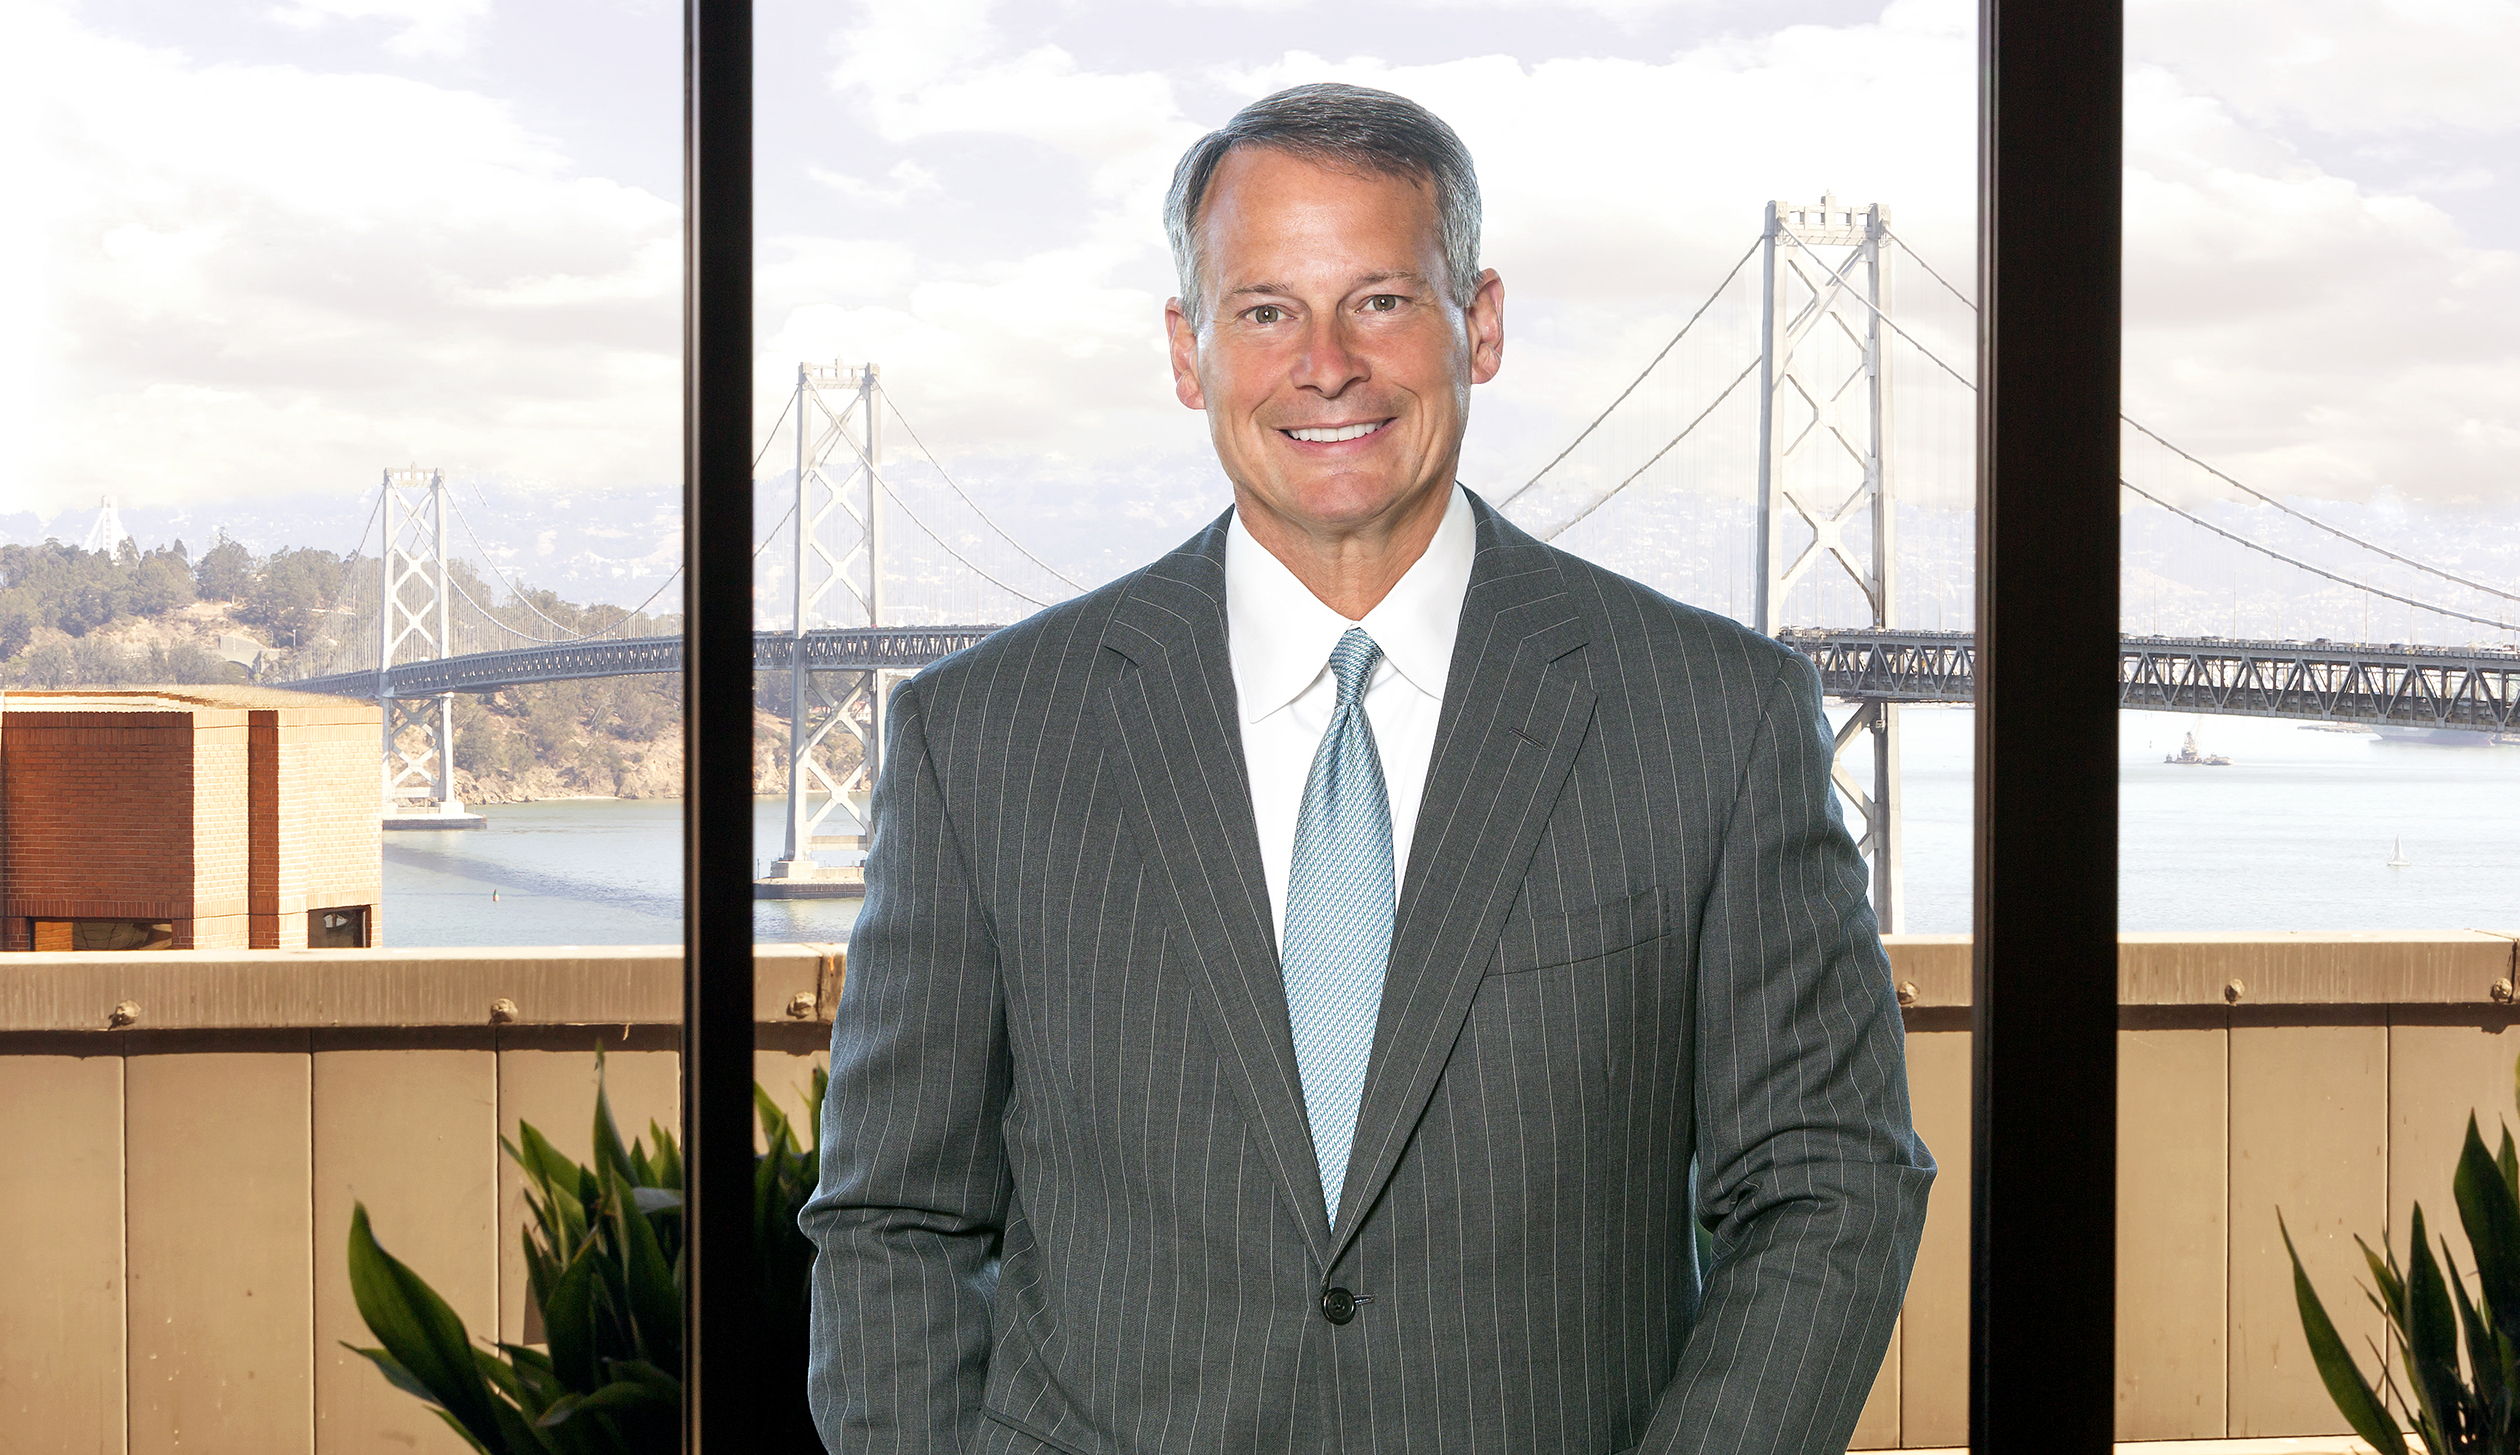 Walter bettinger compensation for delayed us sports betting market